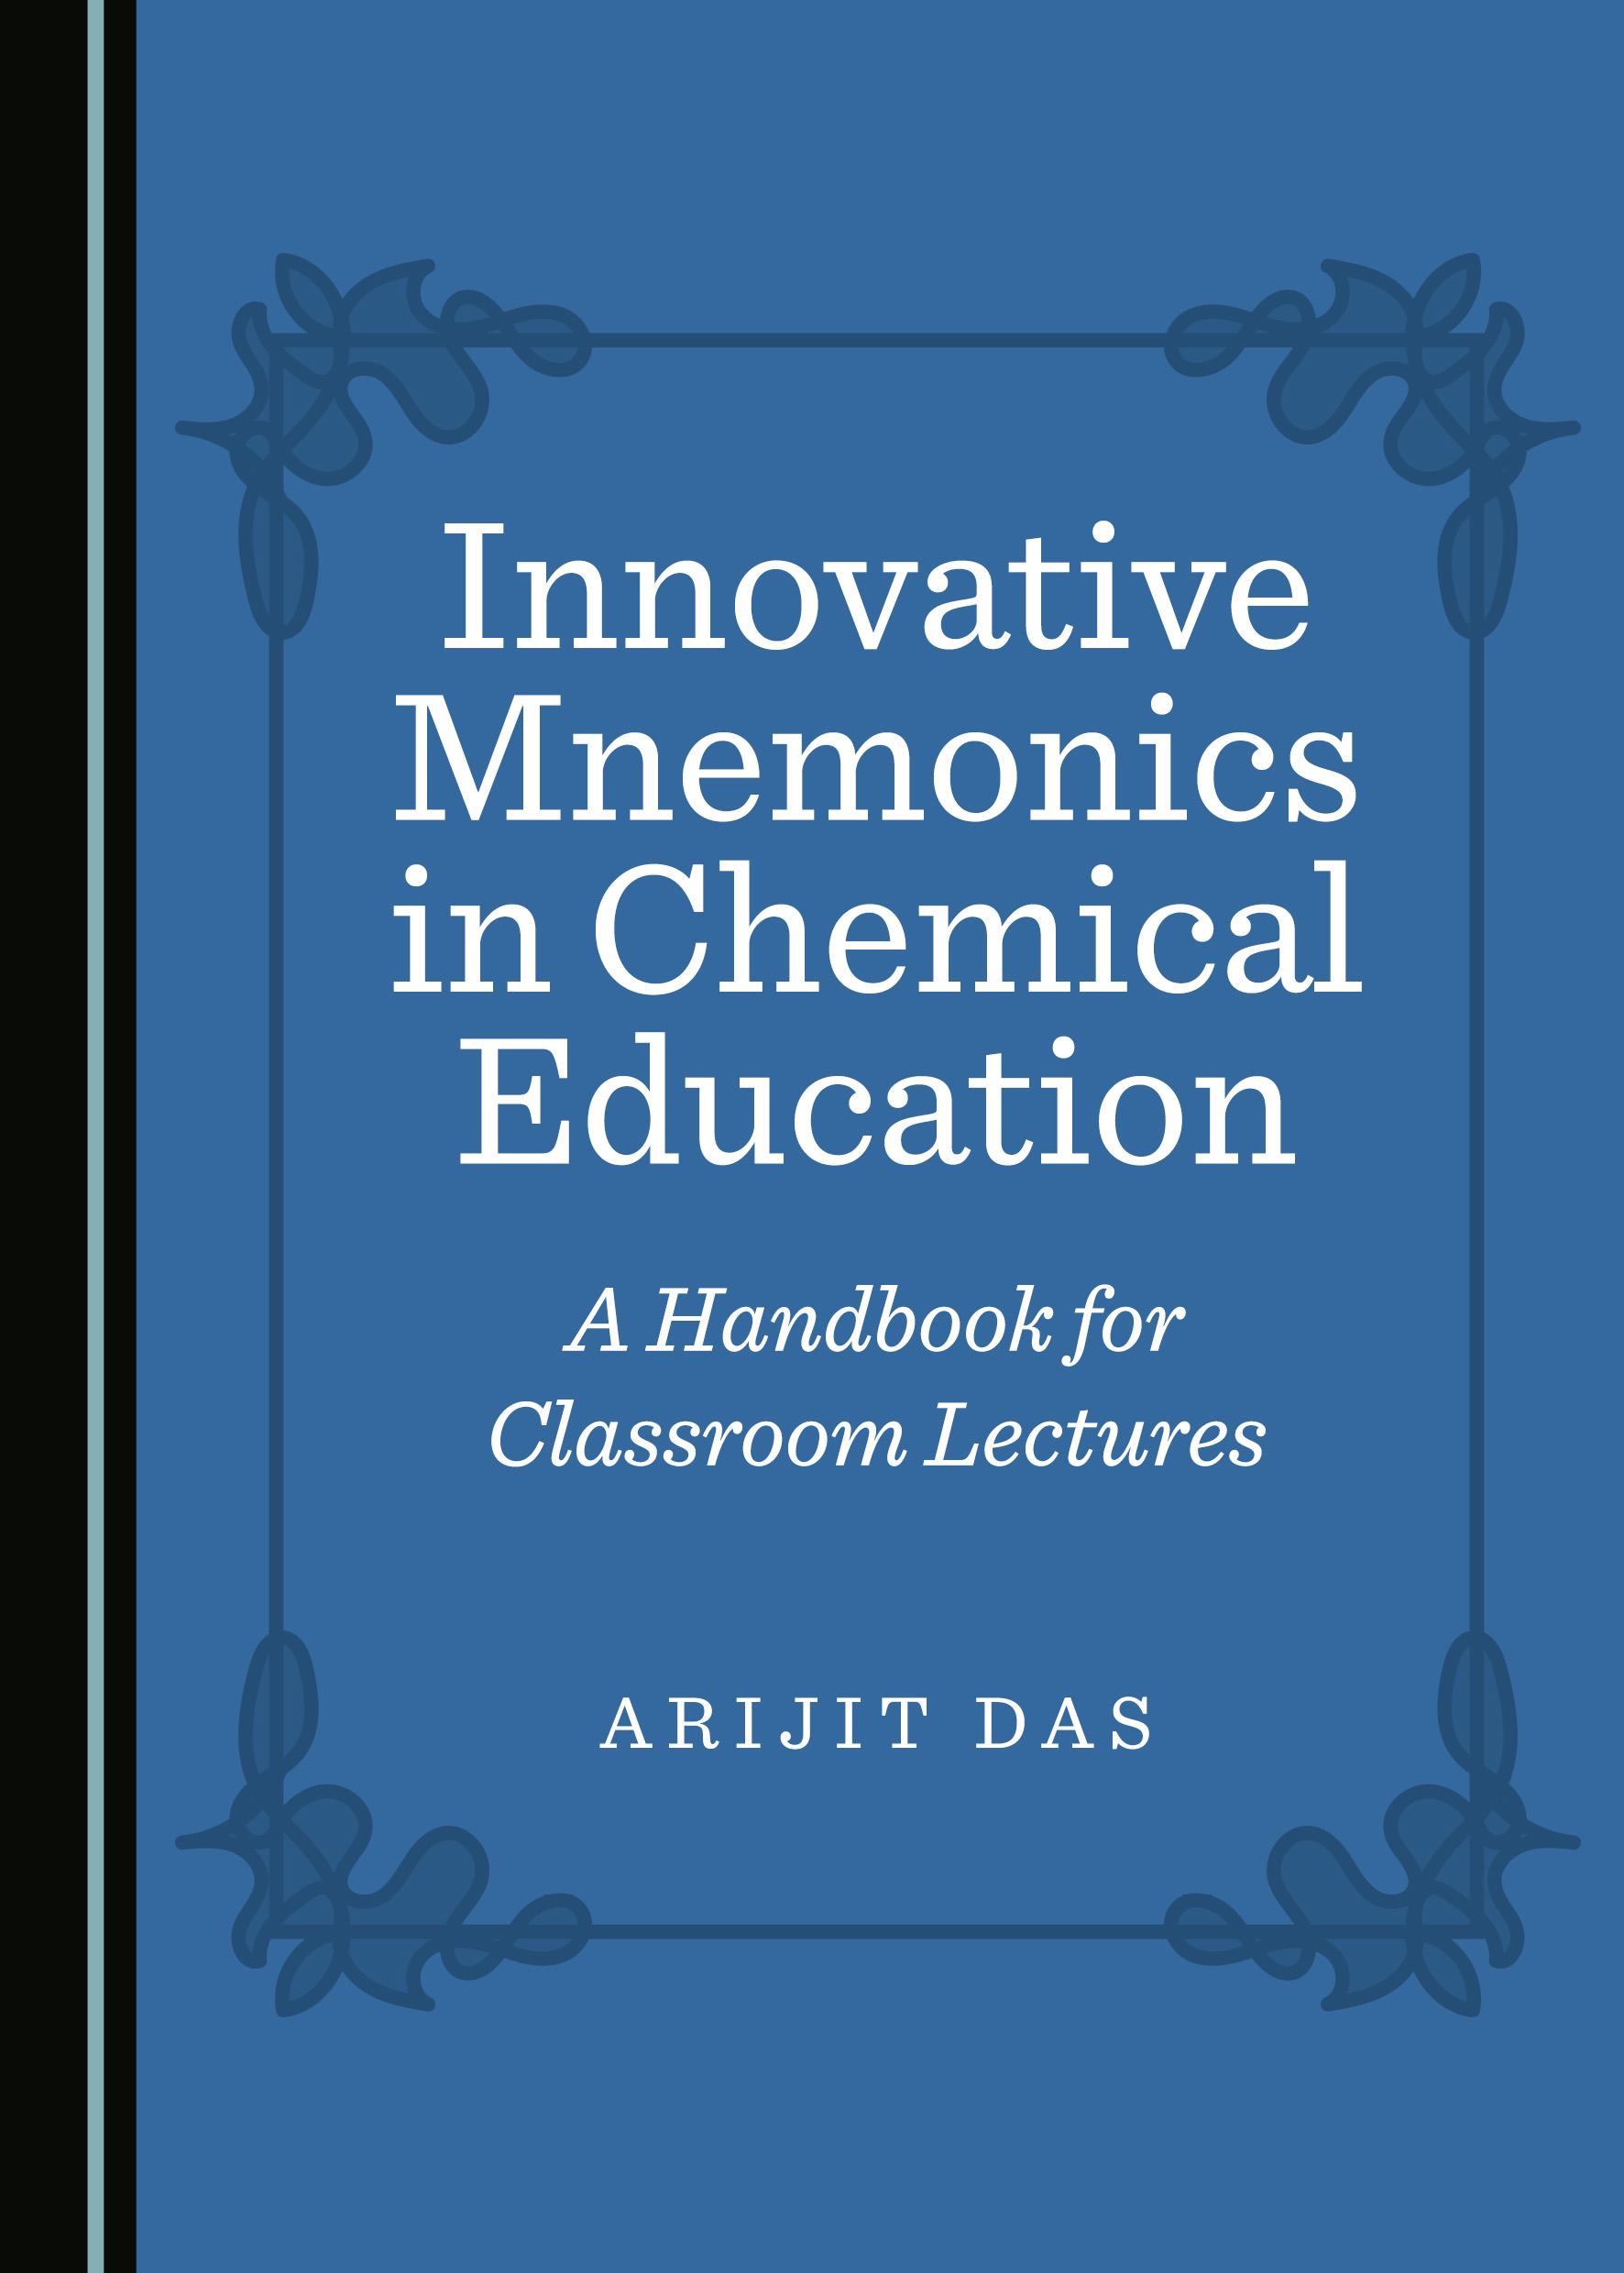 Innovative Mnemonics in Chemical Education: A Handbook for Classroom Lectures